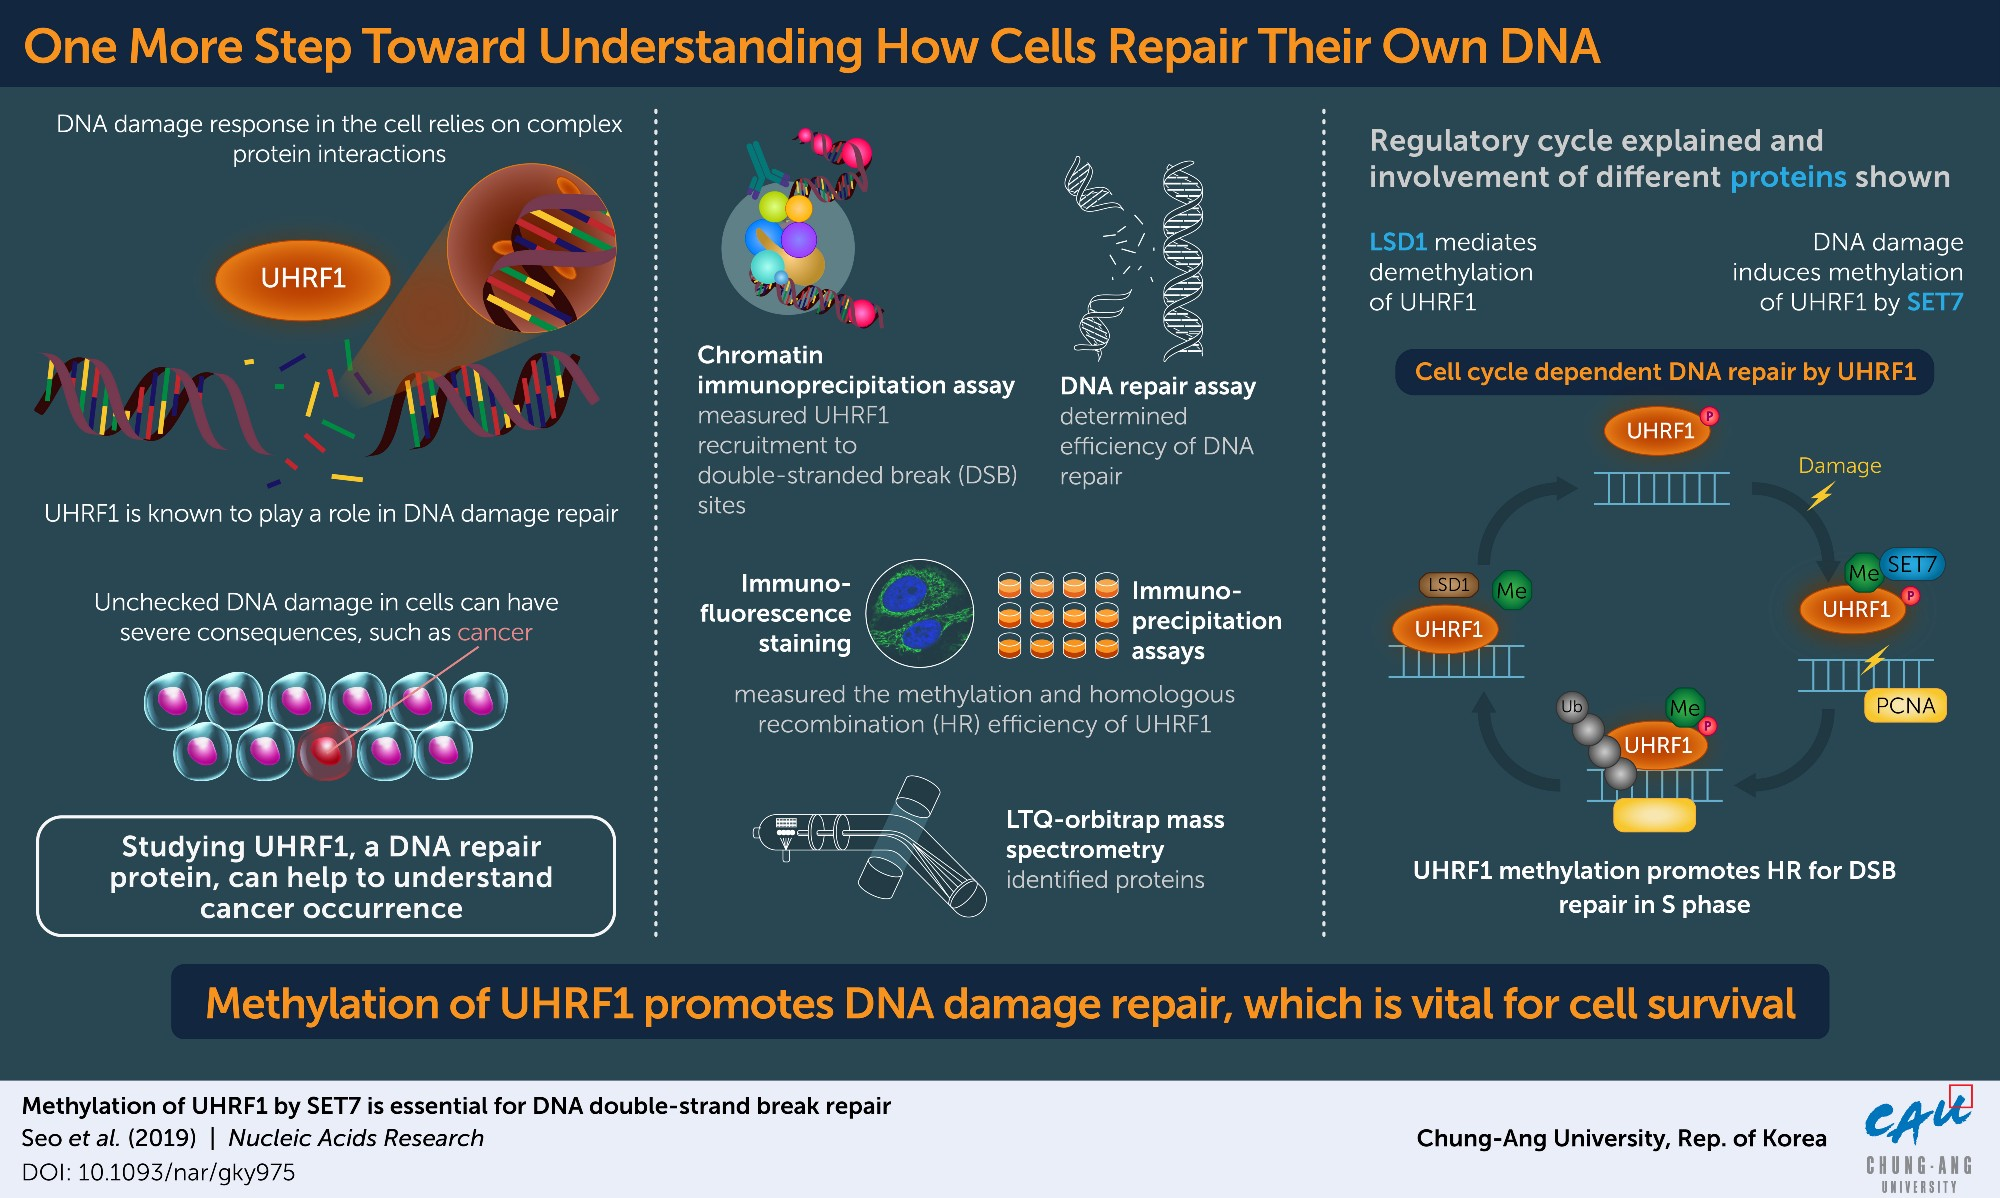 Methylation of a major DNA repair protein is critical to cell survival after DNA damage